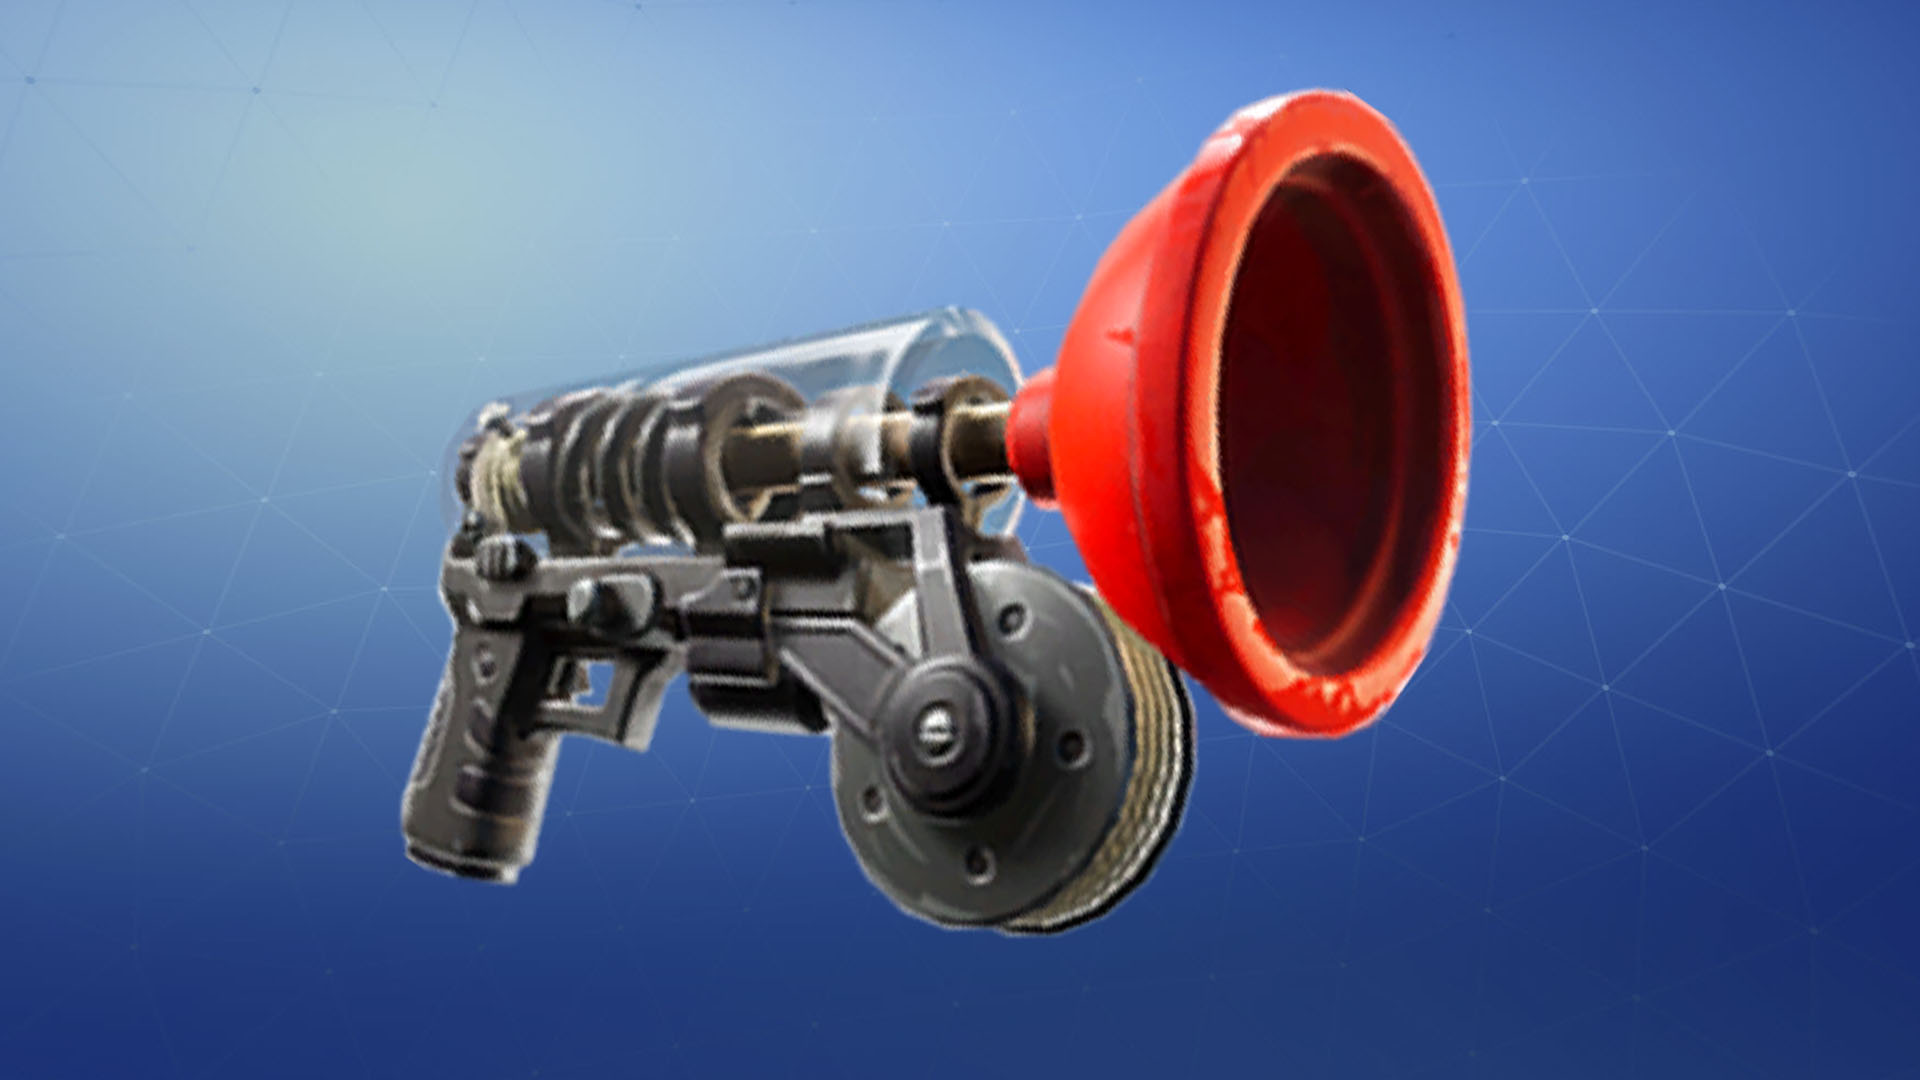 Fortnite fans say goodbye to the Grappler but its not